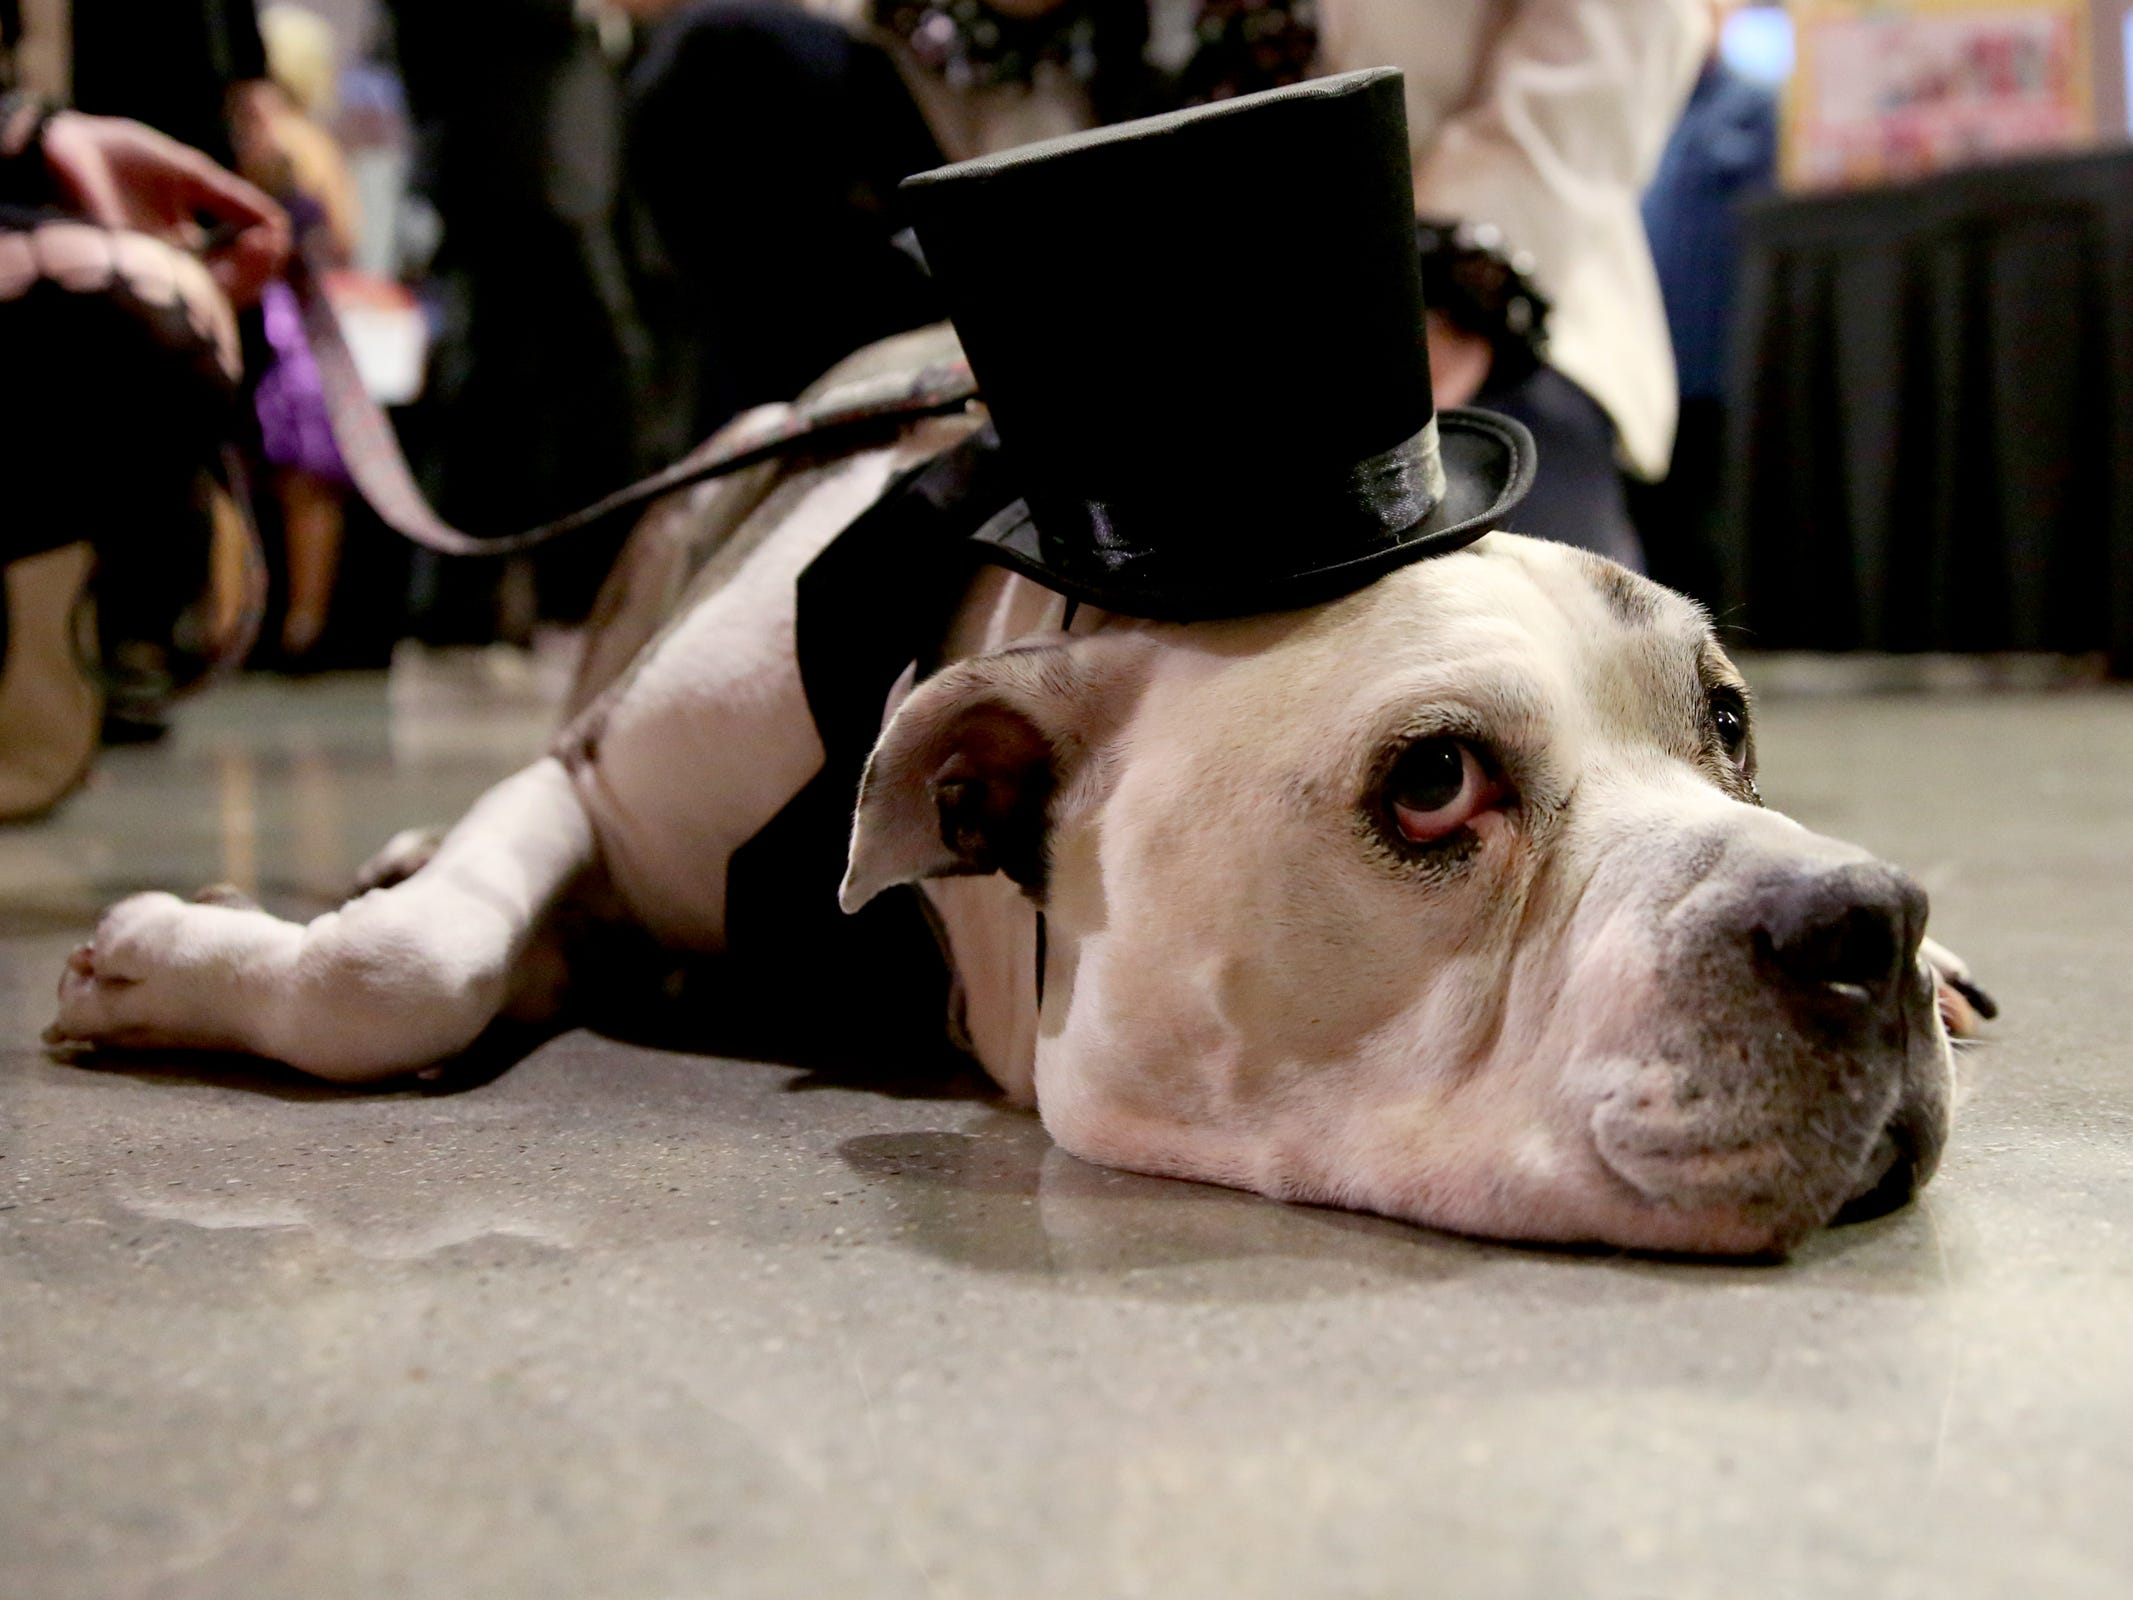 Buddy, owned by Catharine Sutherland and Matt Kuerbis, of Salem, wears a top hat at Bowser's Boo Bash, a fundraiser for the Willamette Humane Society, at the Salem Convention Center on Saturday, Oct. 27, 2018. Buddy was adopted last year after initially coming to the Willamette Humane Society with tumors, eye damage and more health concerns.